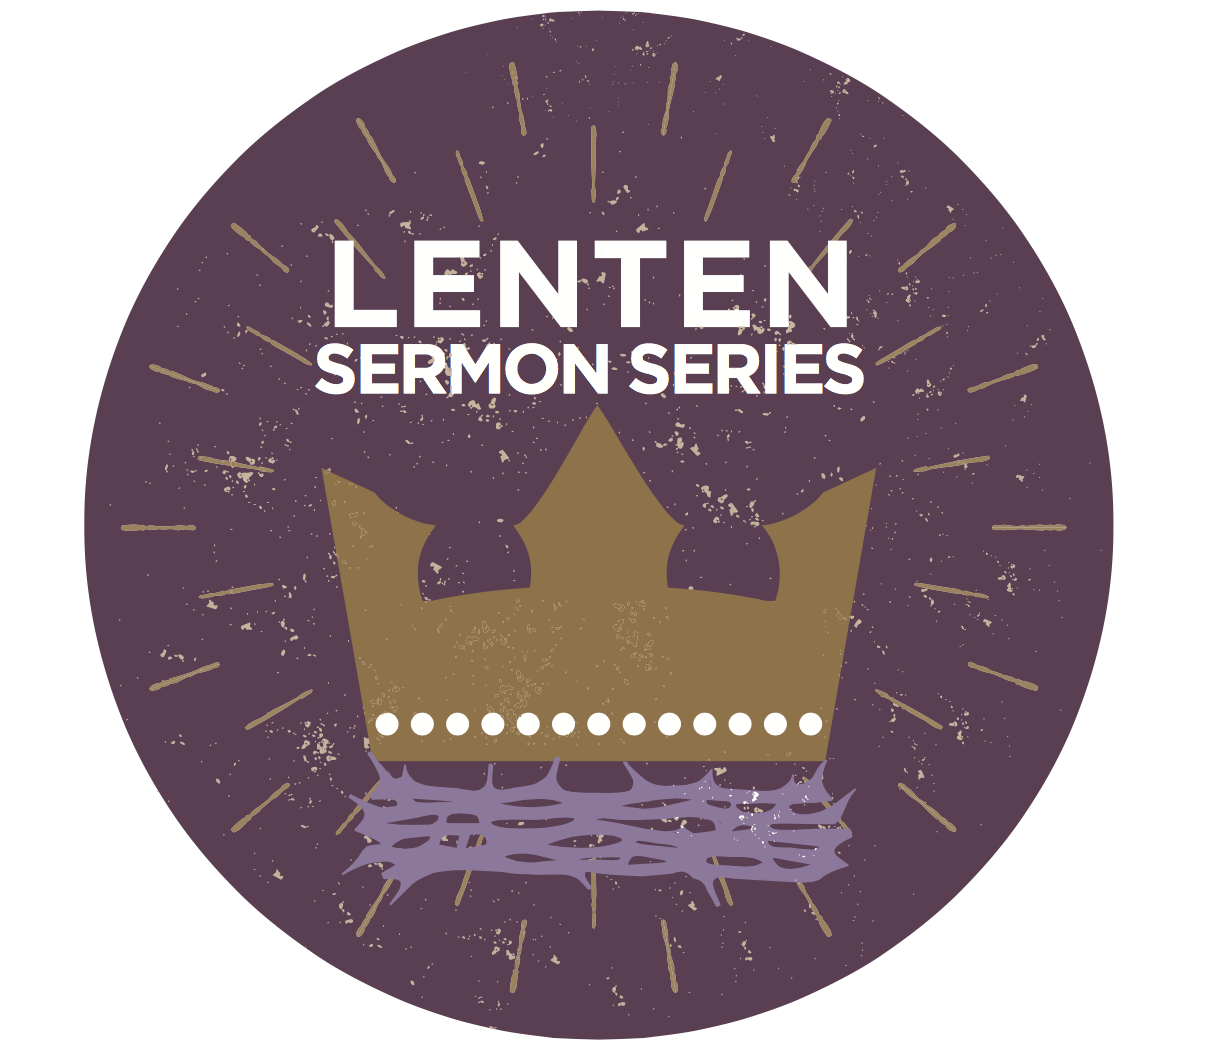 Pre-Lenten Workshop set for Jan. 15, 2016